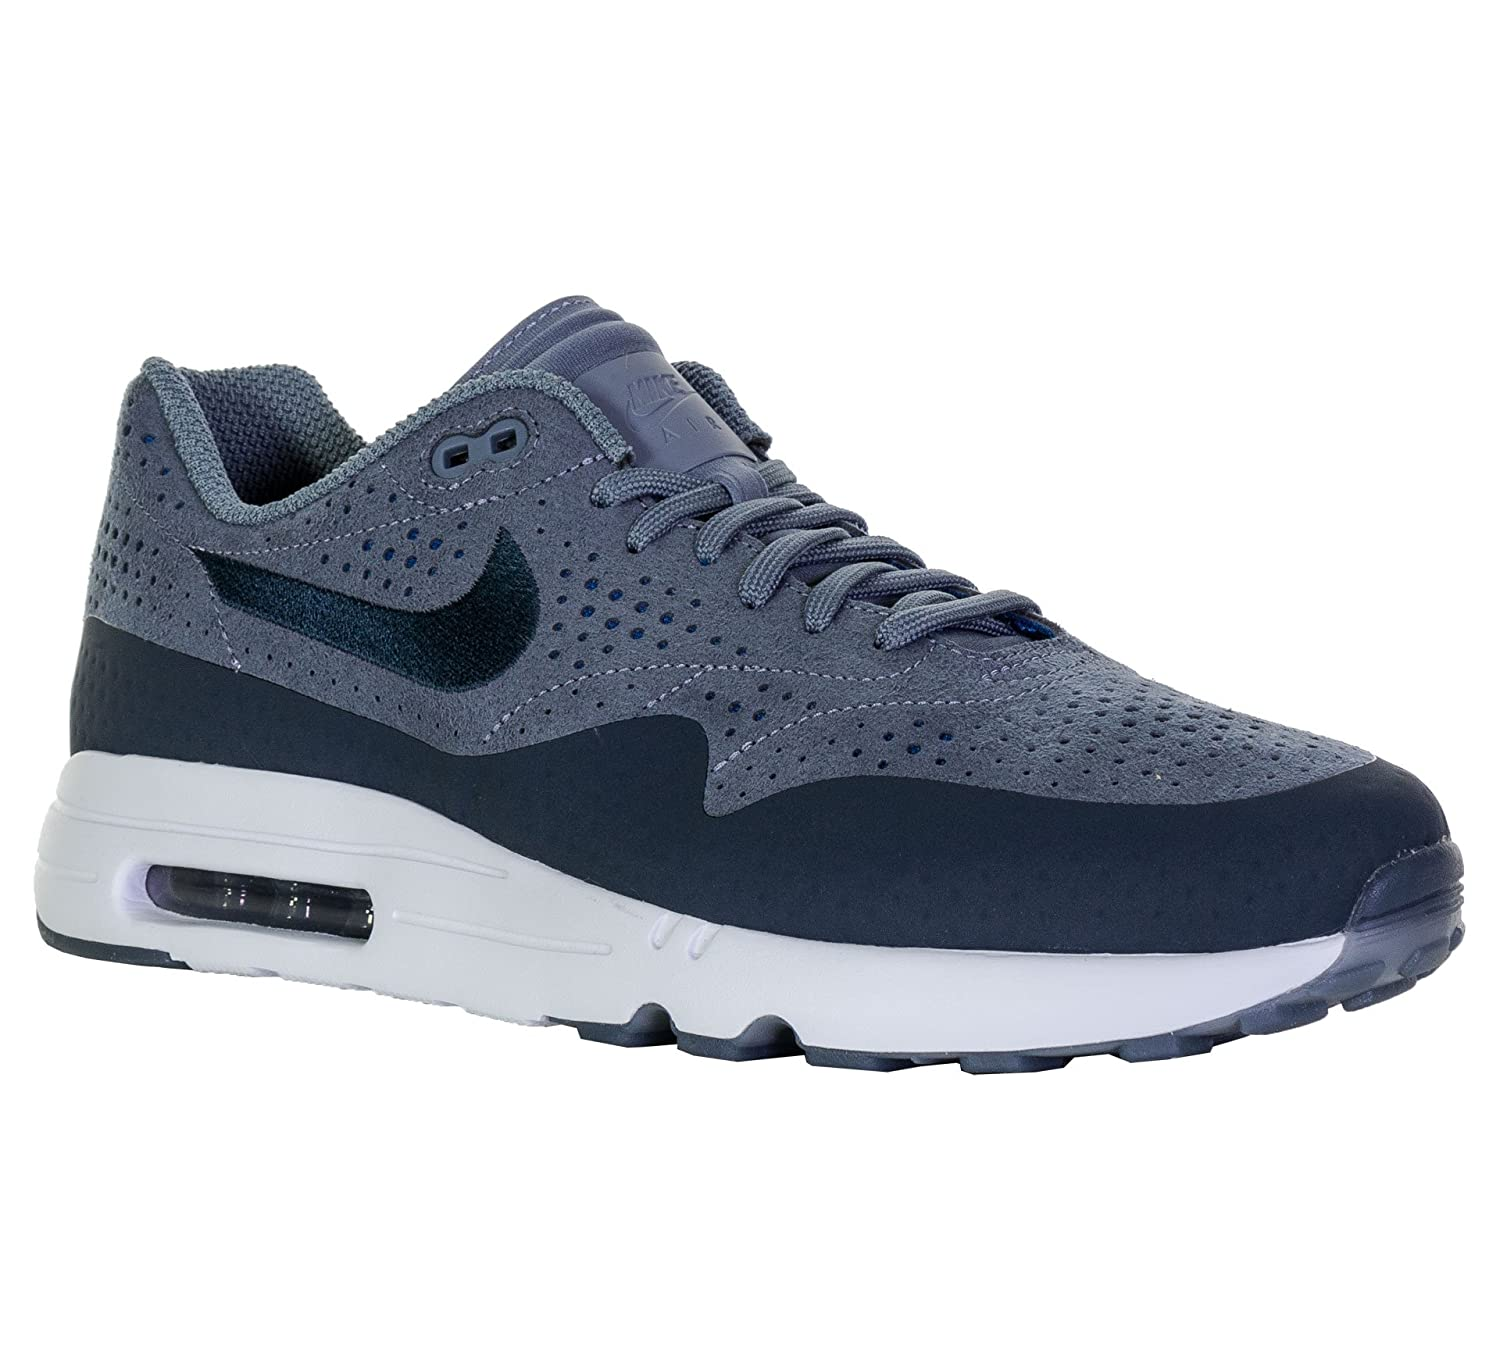 Nike Men's Air Max 1 Ultra 2.0 Moire Trainers: Amazon.co.uk